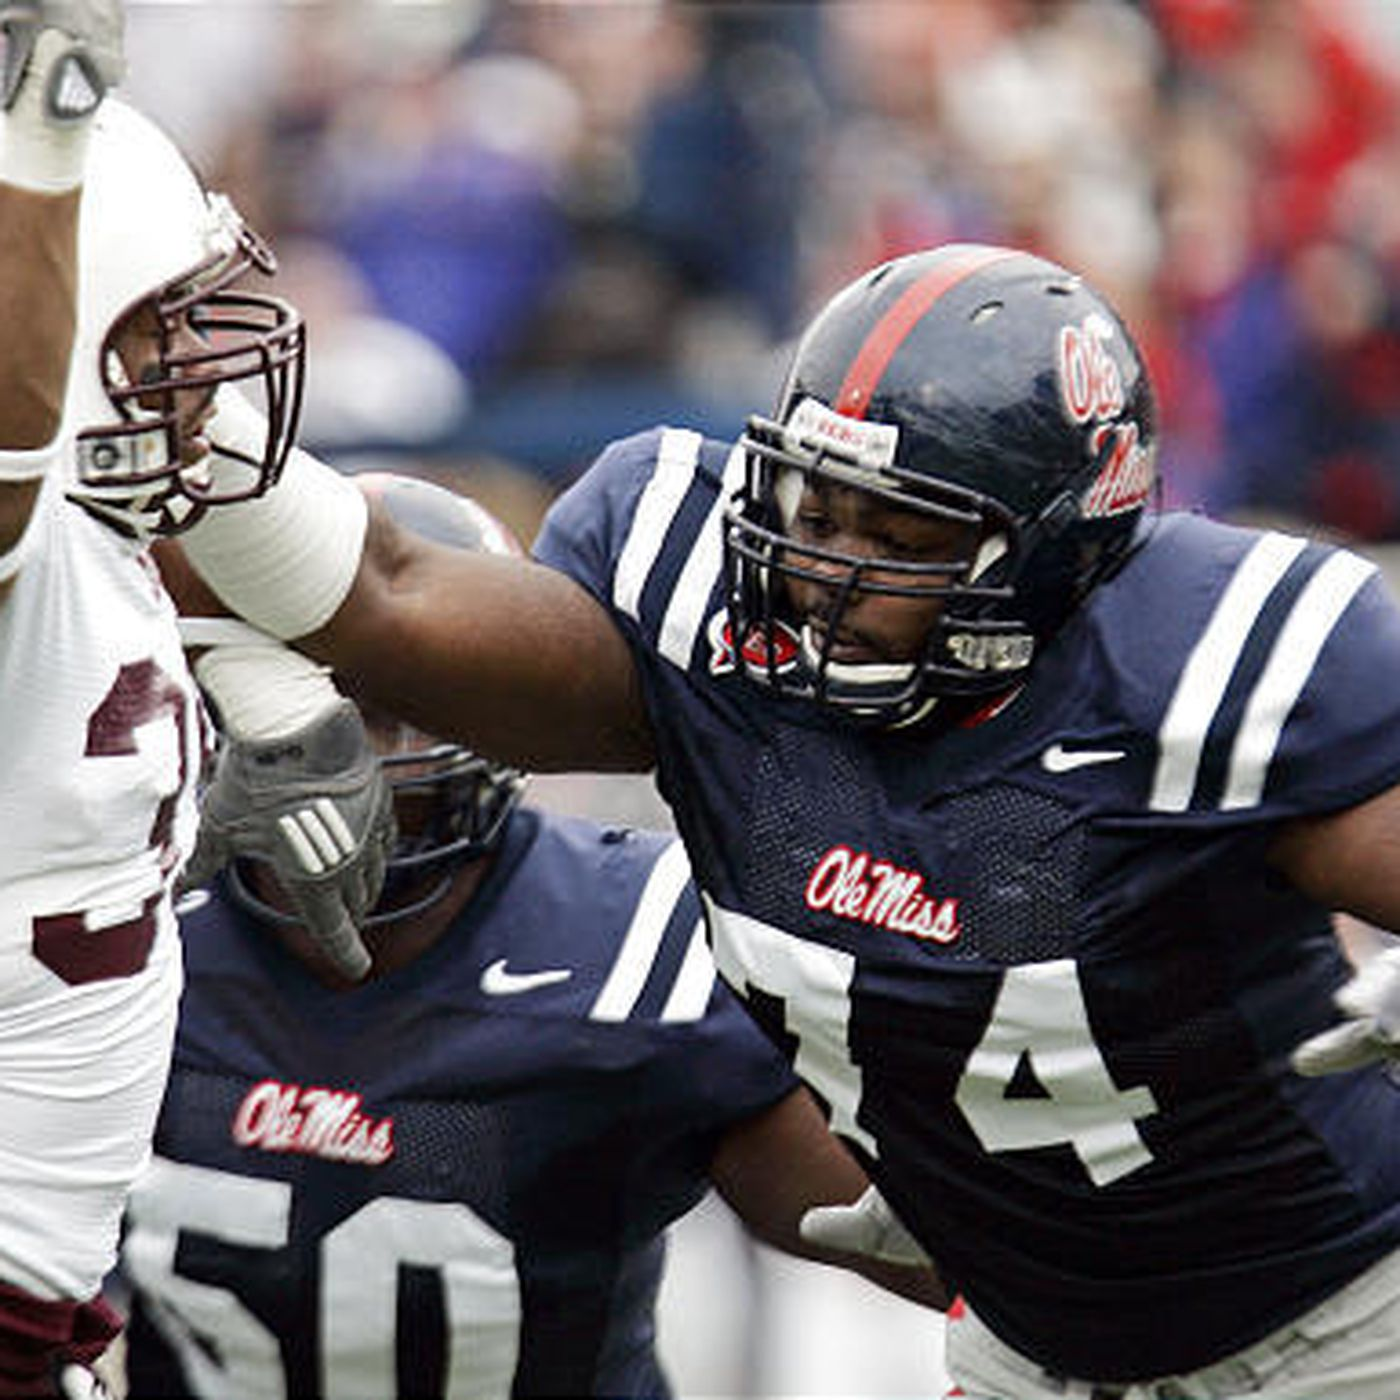 44c2eb14 A tale of 2 linemen: 'Blind Side' subject, another Ole Miss player ...